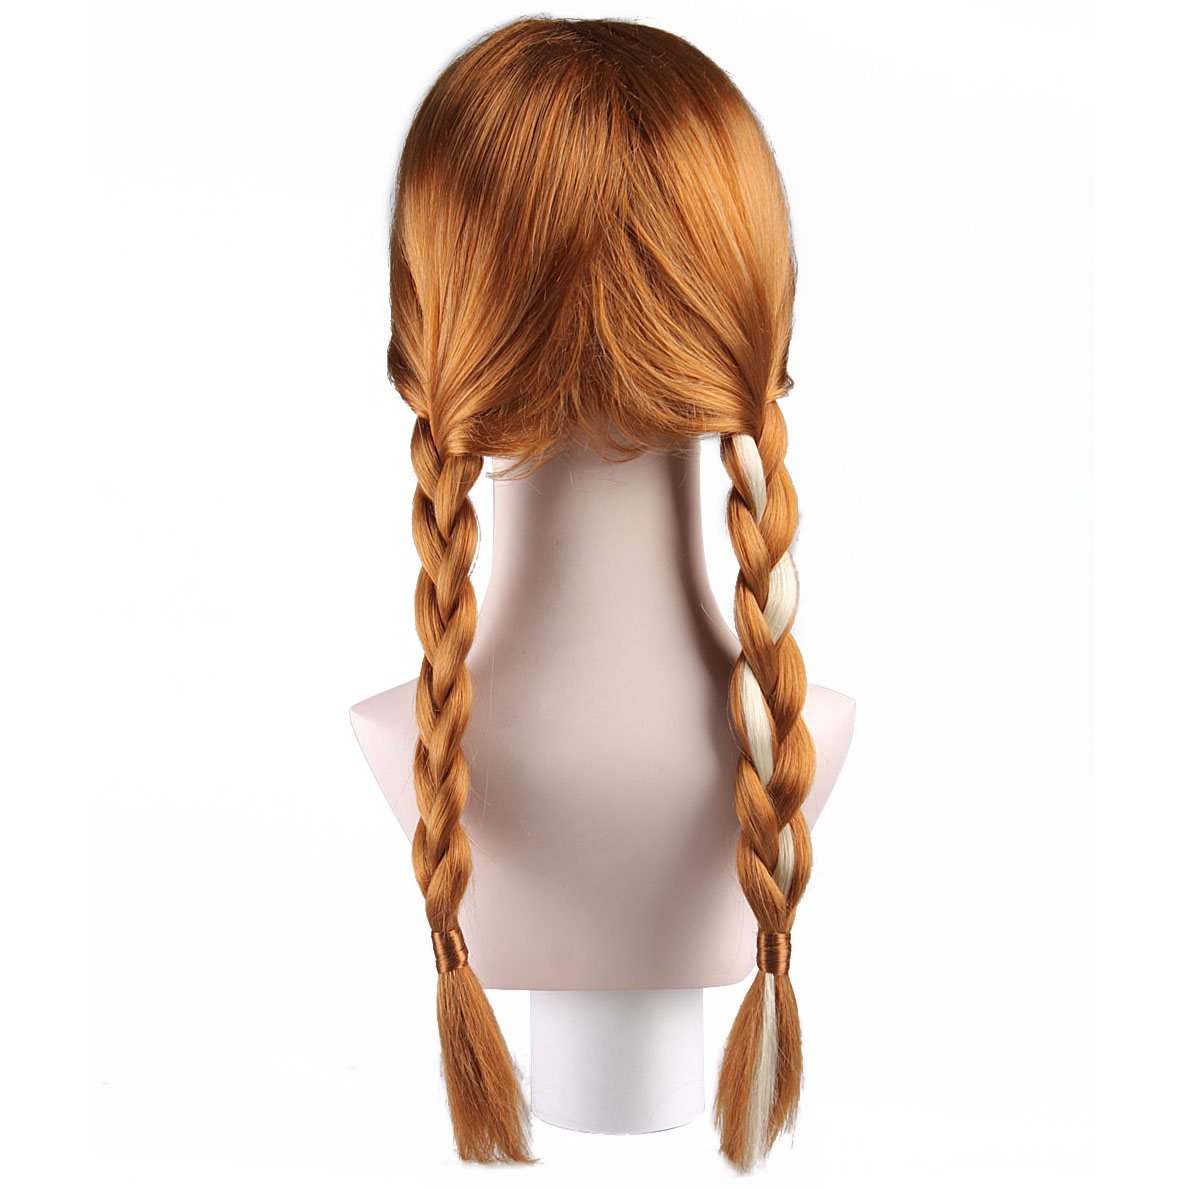 Child Strawberry Blonde Wig Styled Two Braided Pigtails With Bangs Teen Princess Anna Synthetic Hair Comic Con Cosplay Accessory